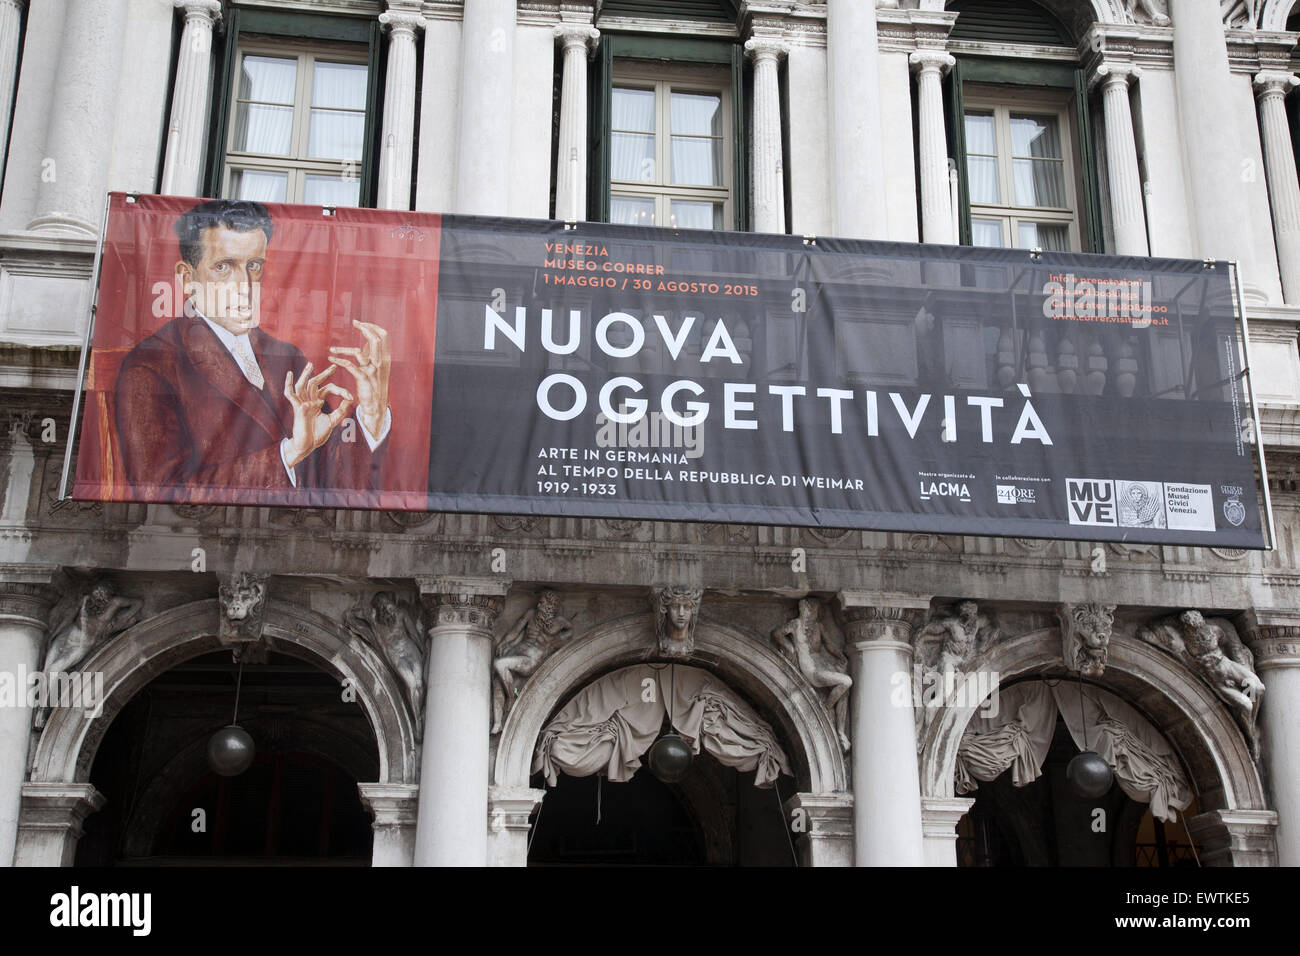 Poster of Museo Correr Museum, San Marcos - St Marks Square, Venice ...